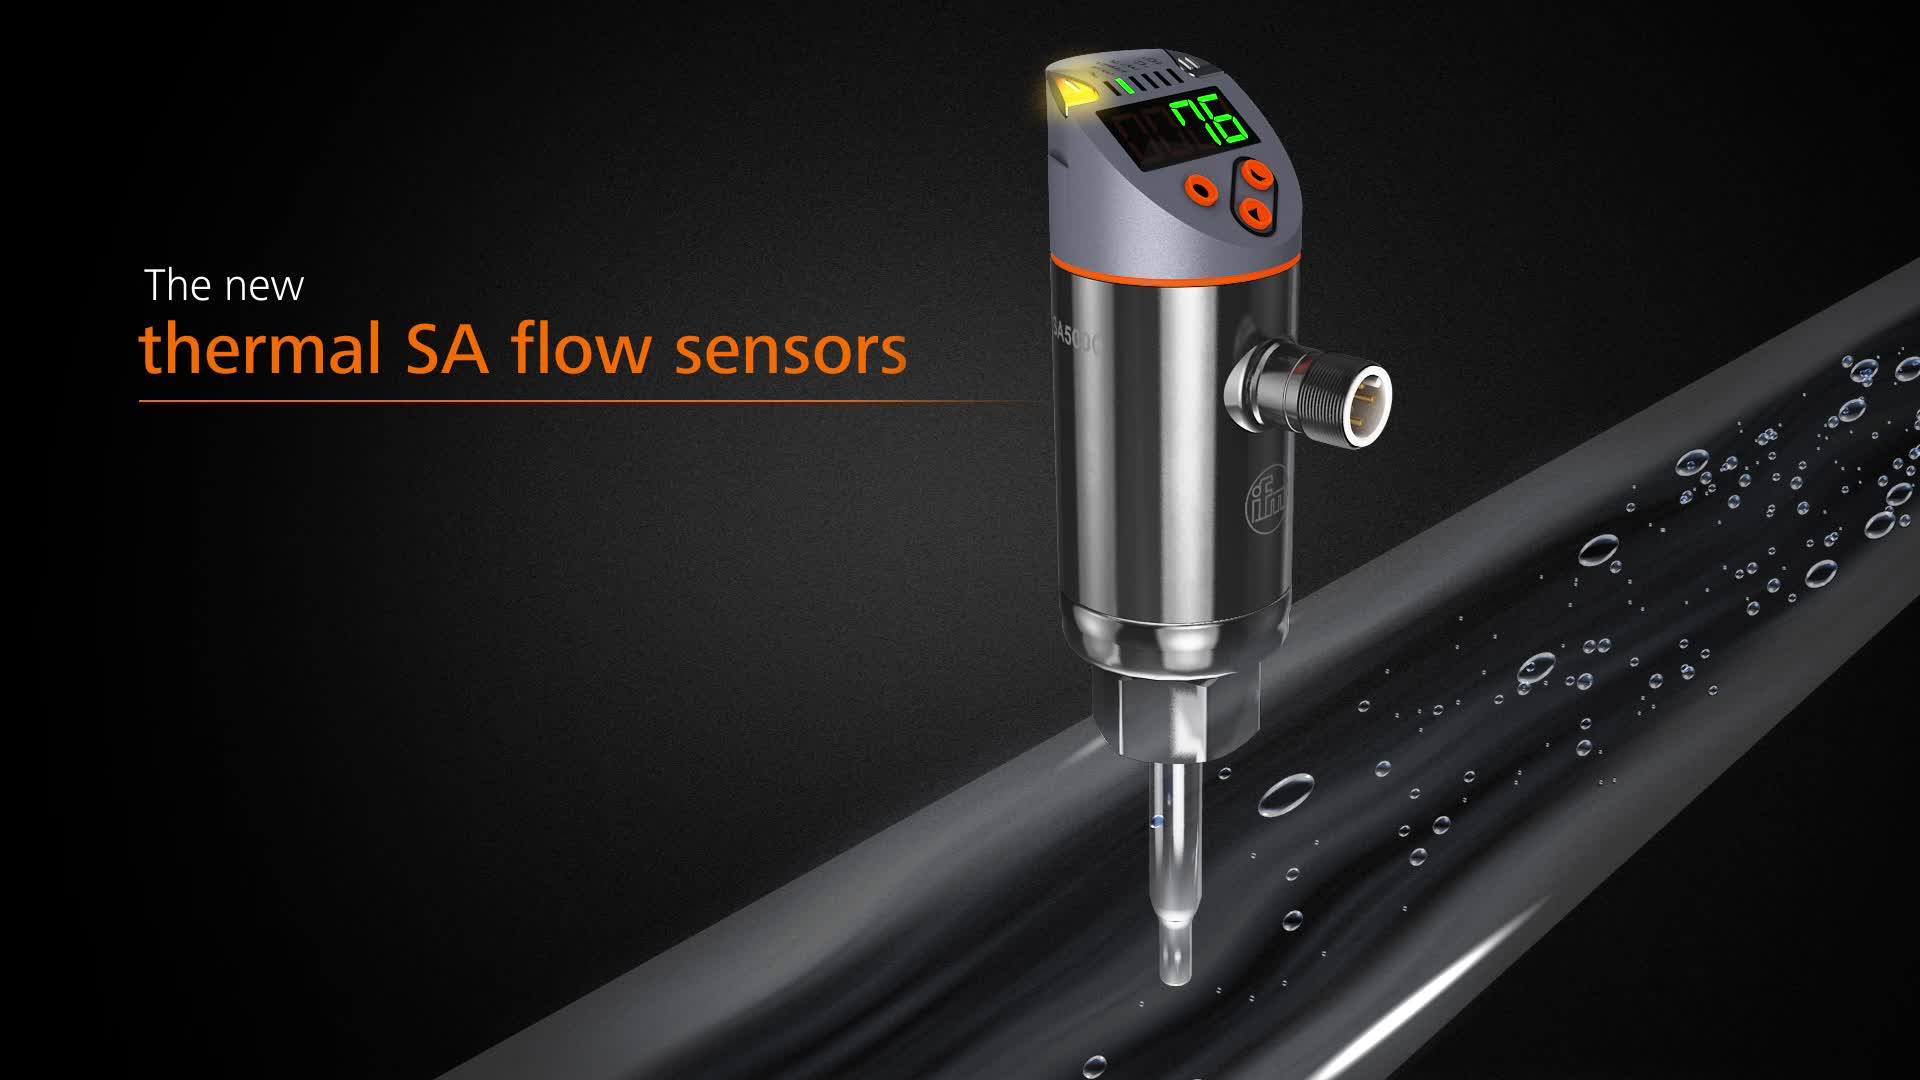 ifm SA = flow & temperature in one senso